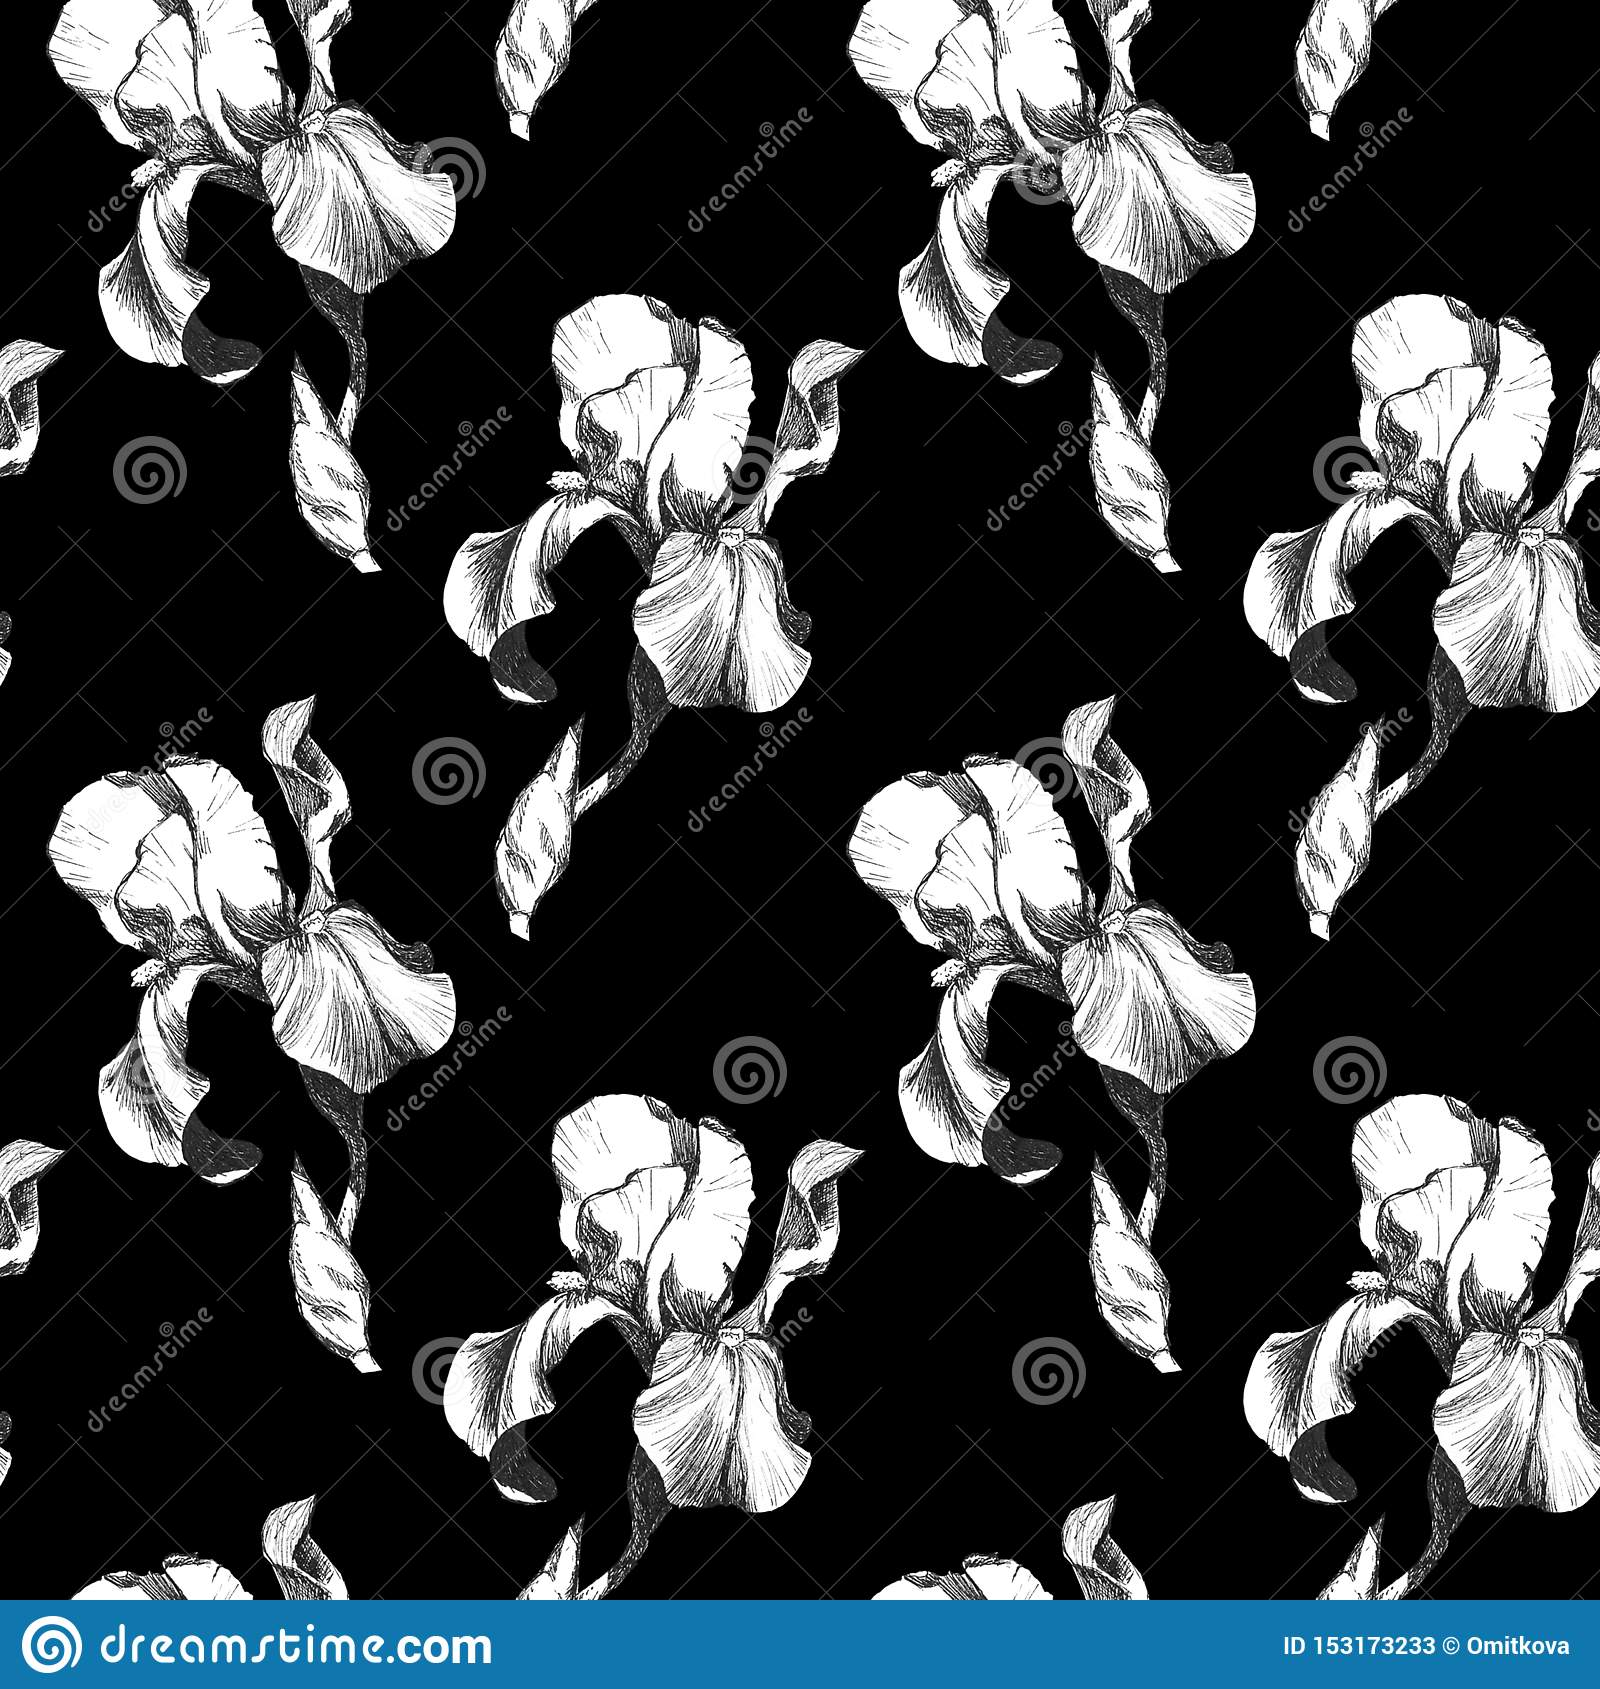 Floral seamless pattern with hand drawn ink iris flowers on black background. Flowers lined up in harmonious geometric